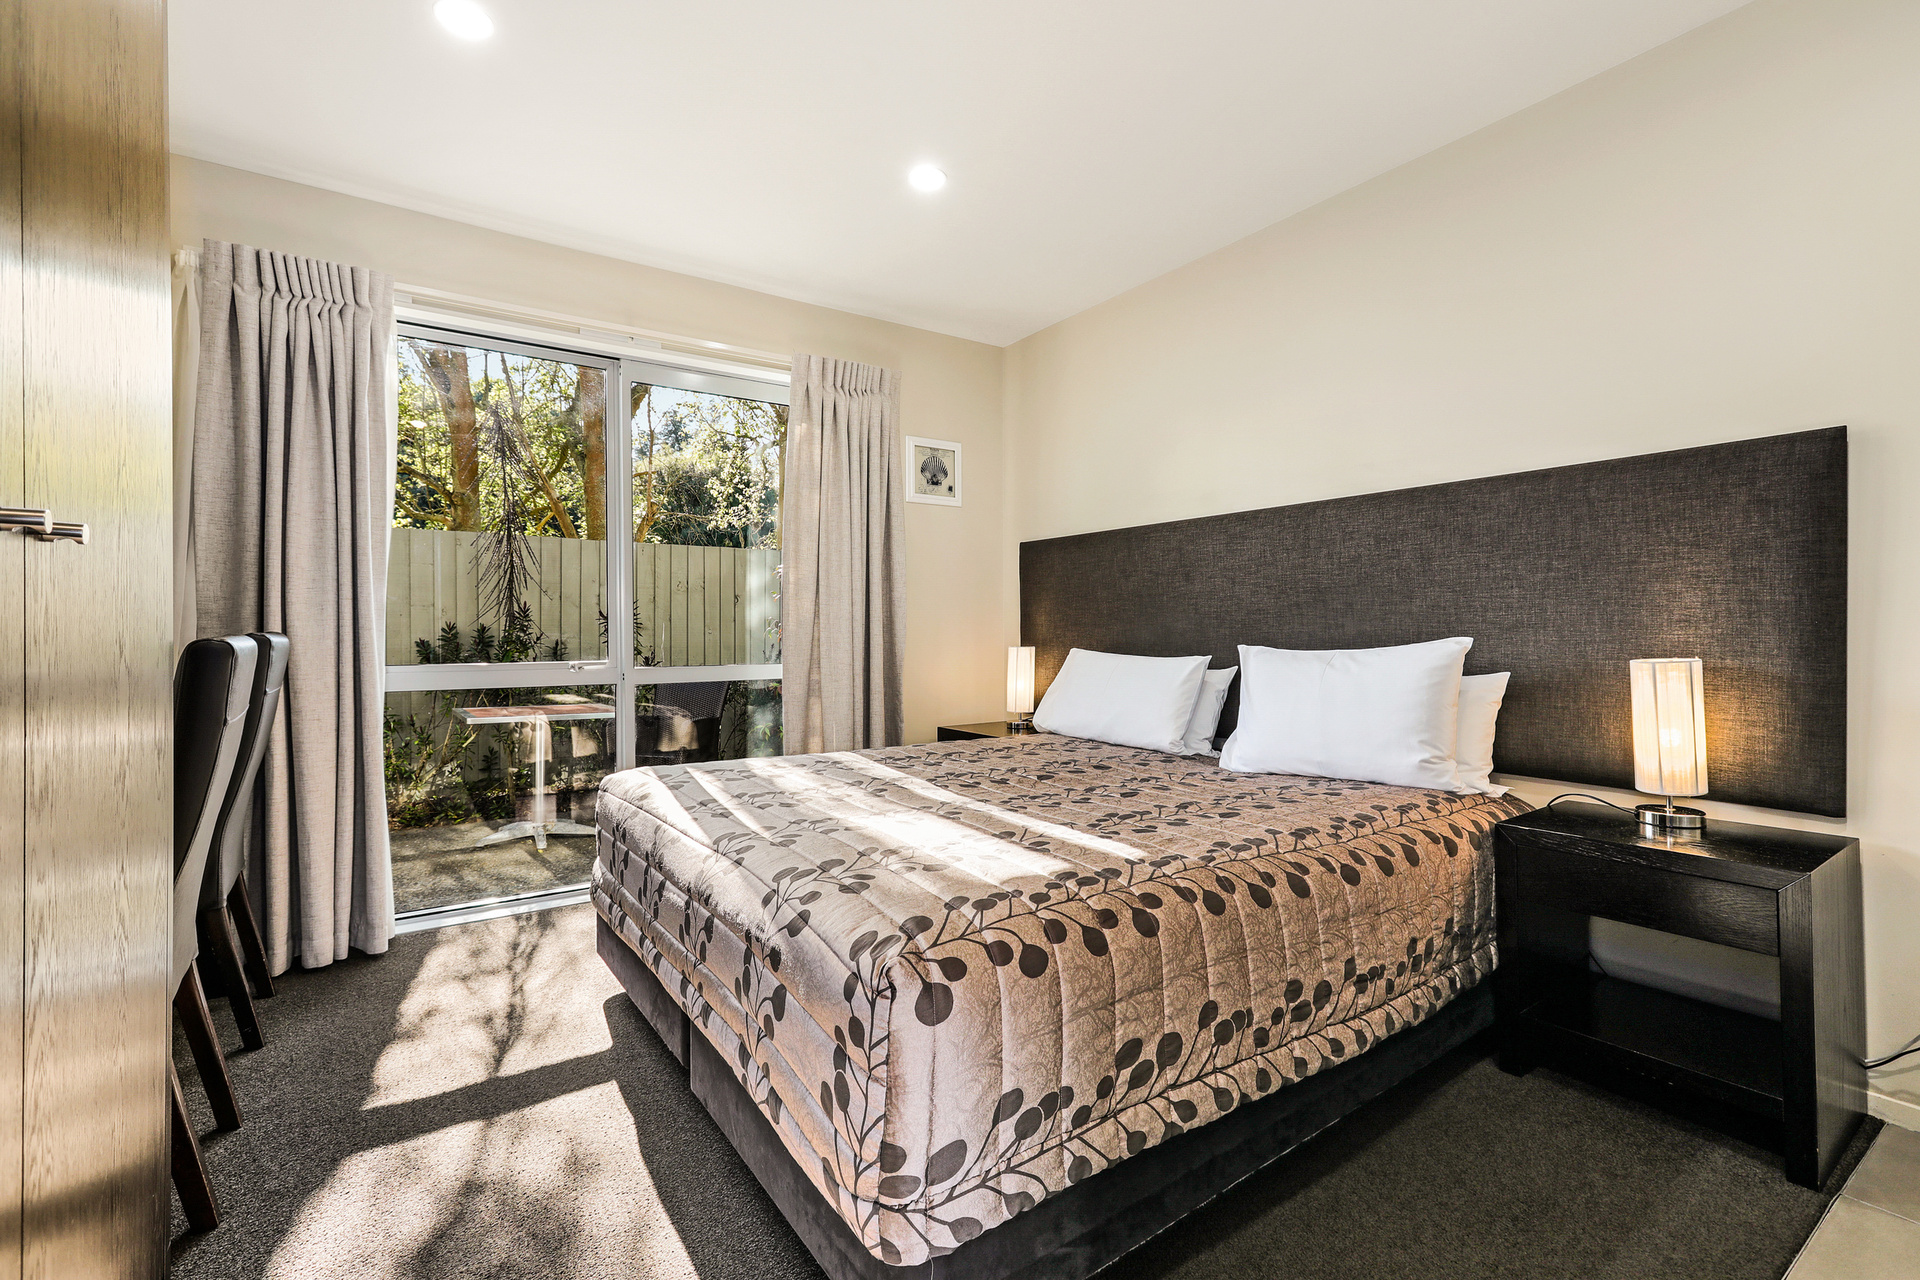 AMORE MOTORLODGE   Christchurch, New Zealand, New Zealand   Hotel & Motel brokers   OraPages.com - FREE Business         Directory